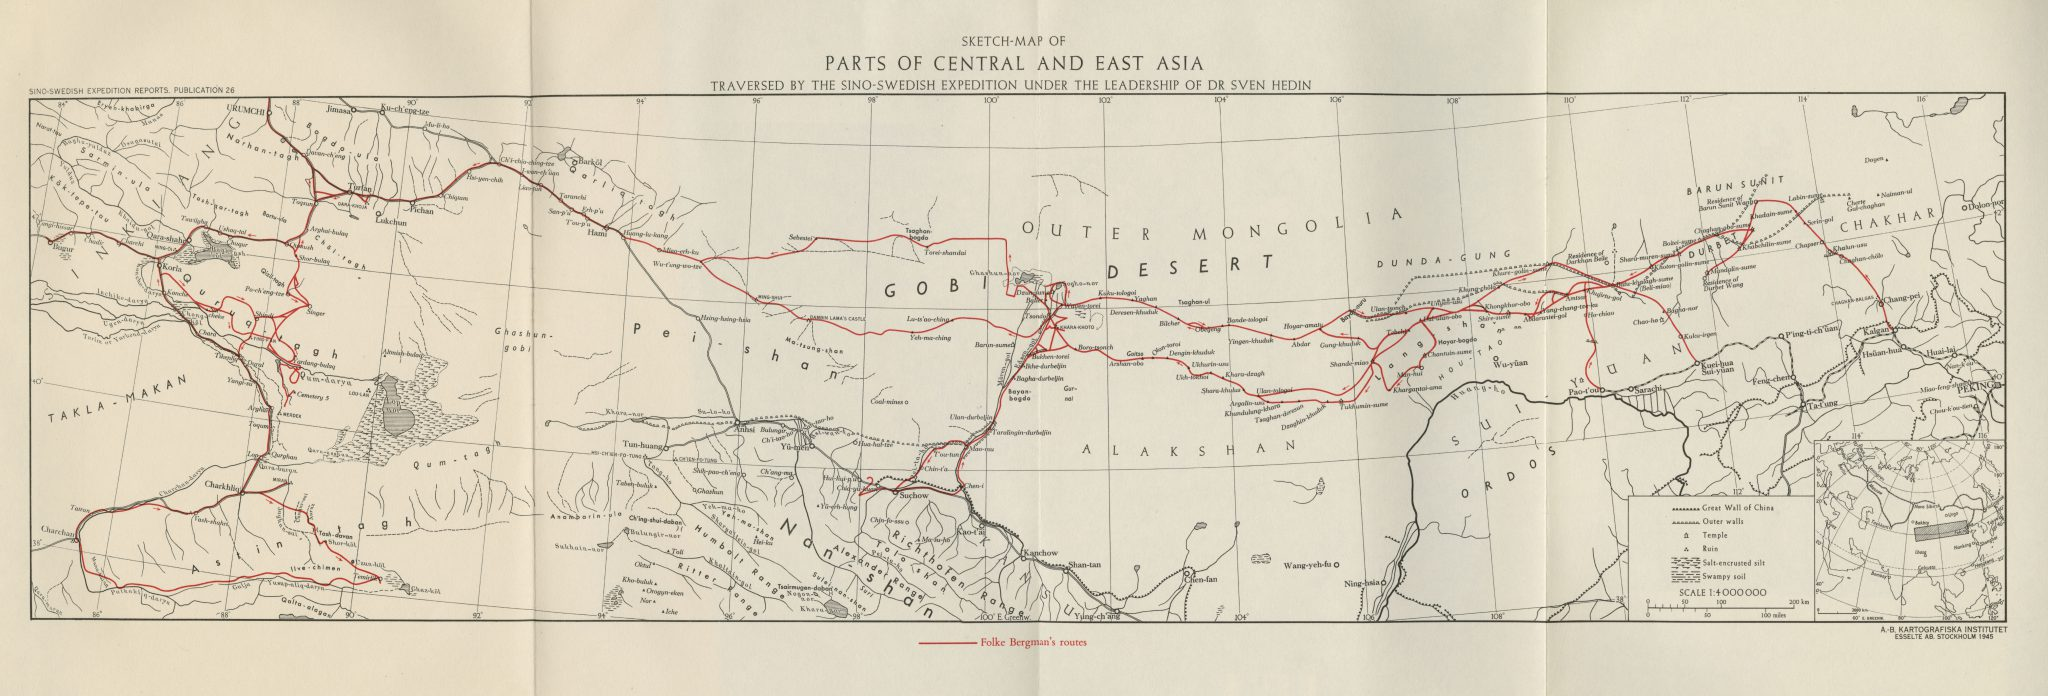 Sketch-Map of Parts of Central Asia and East Asia 1945